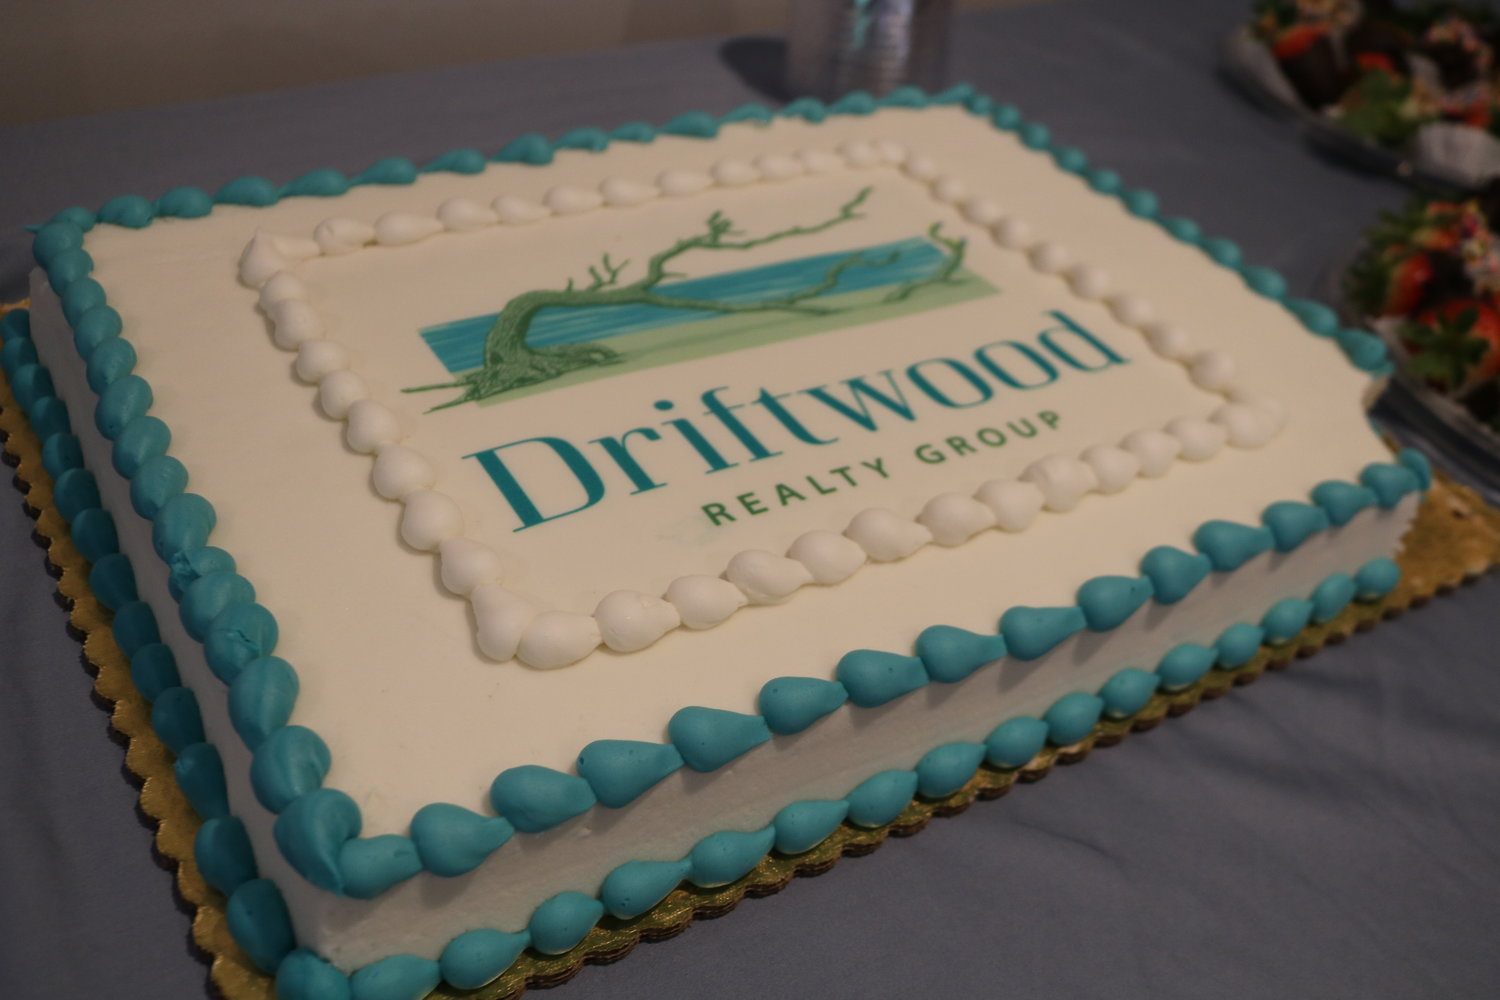 A decorated cake was part of the celebration for the launch of Driftwood Realty Group.